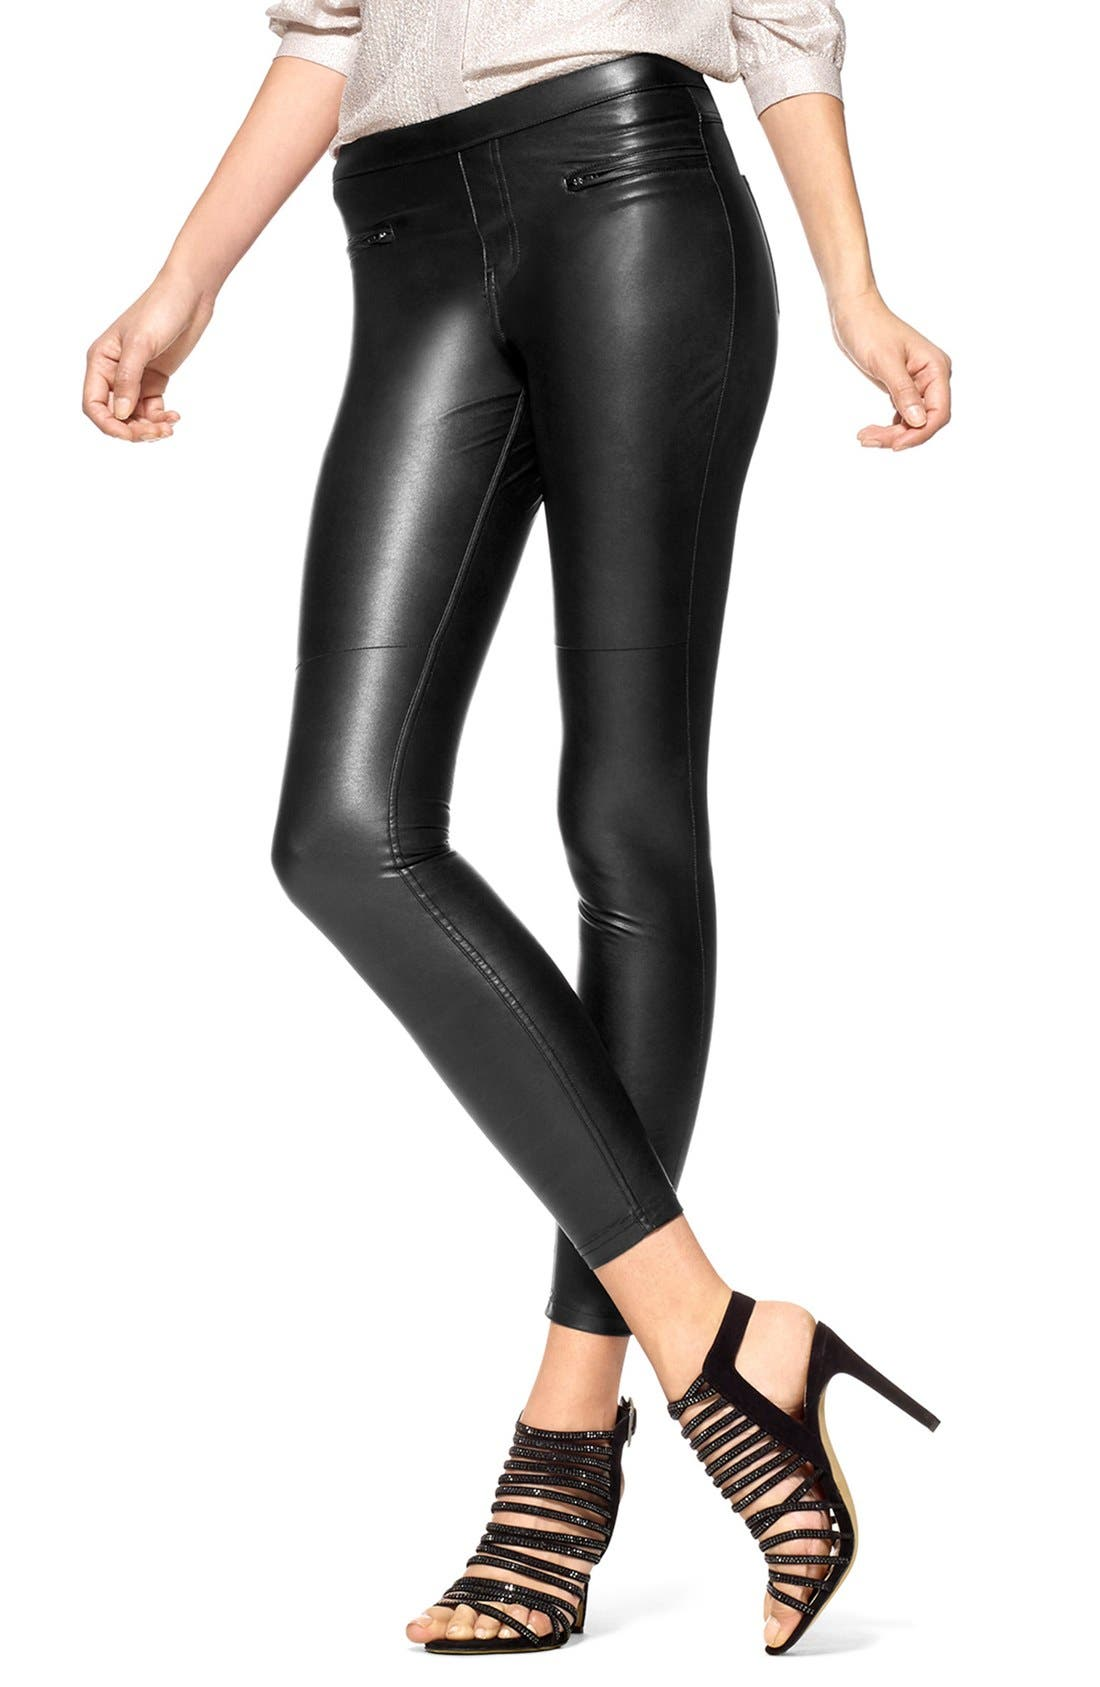 Alternate Image 1 Selected - Hue 'Leatherette Skimmer' Faux Leather Leggings